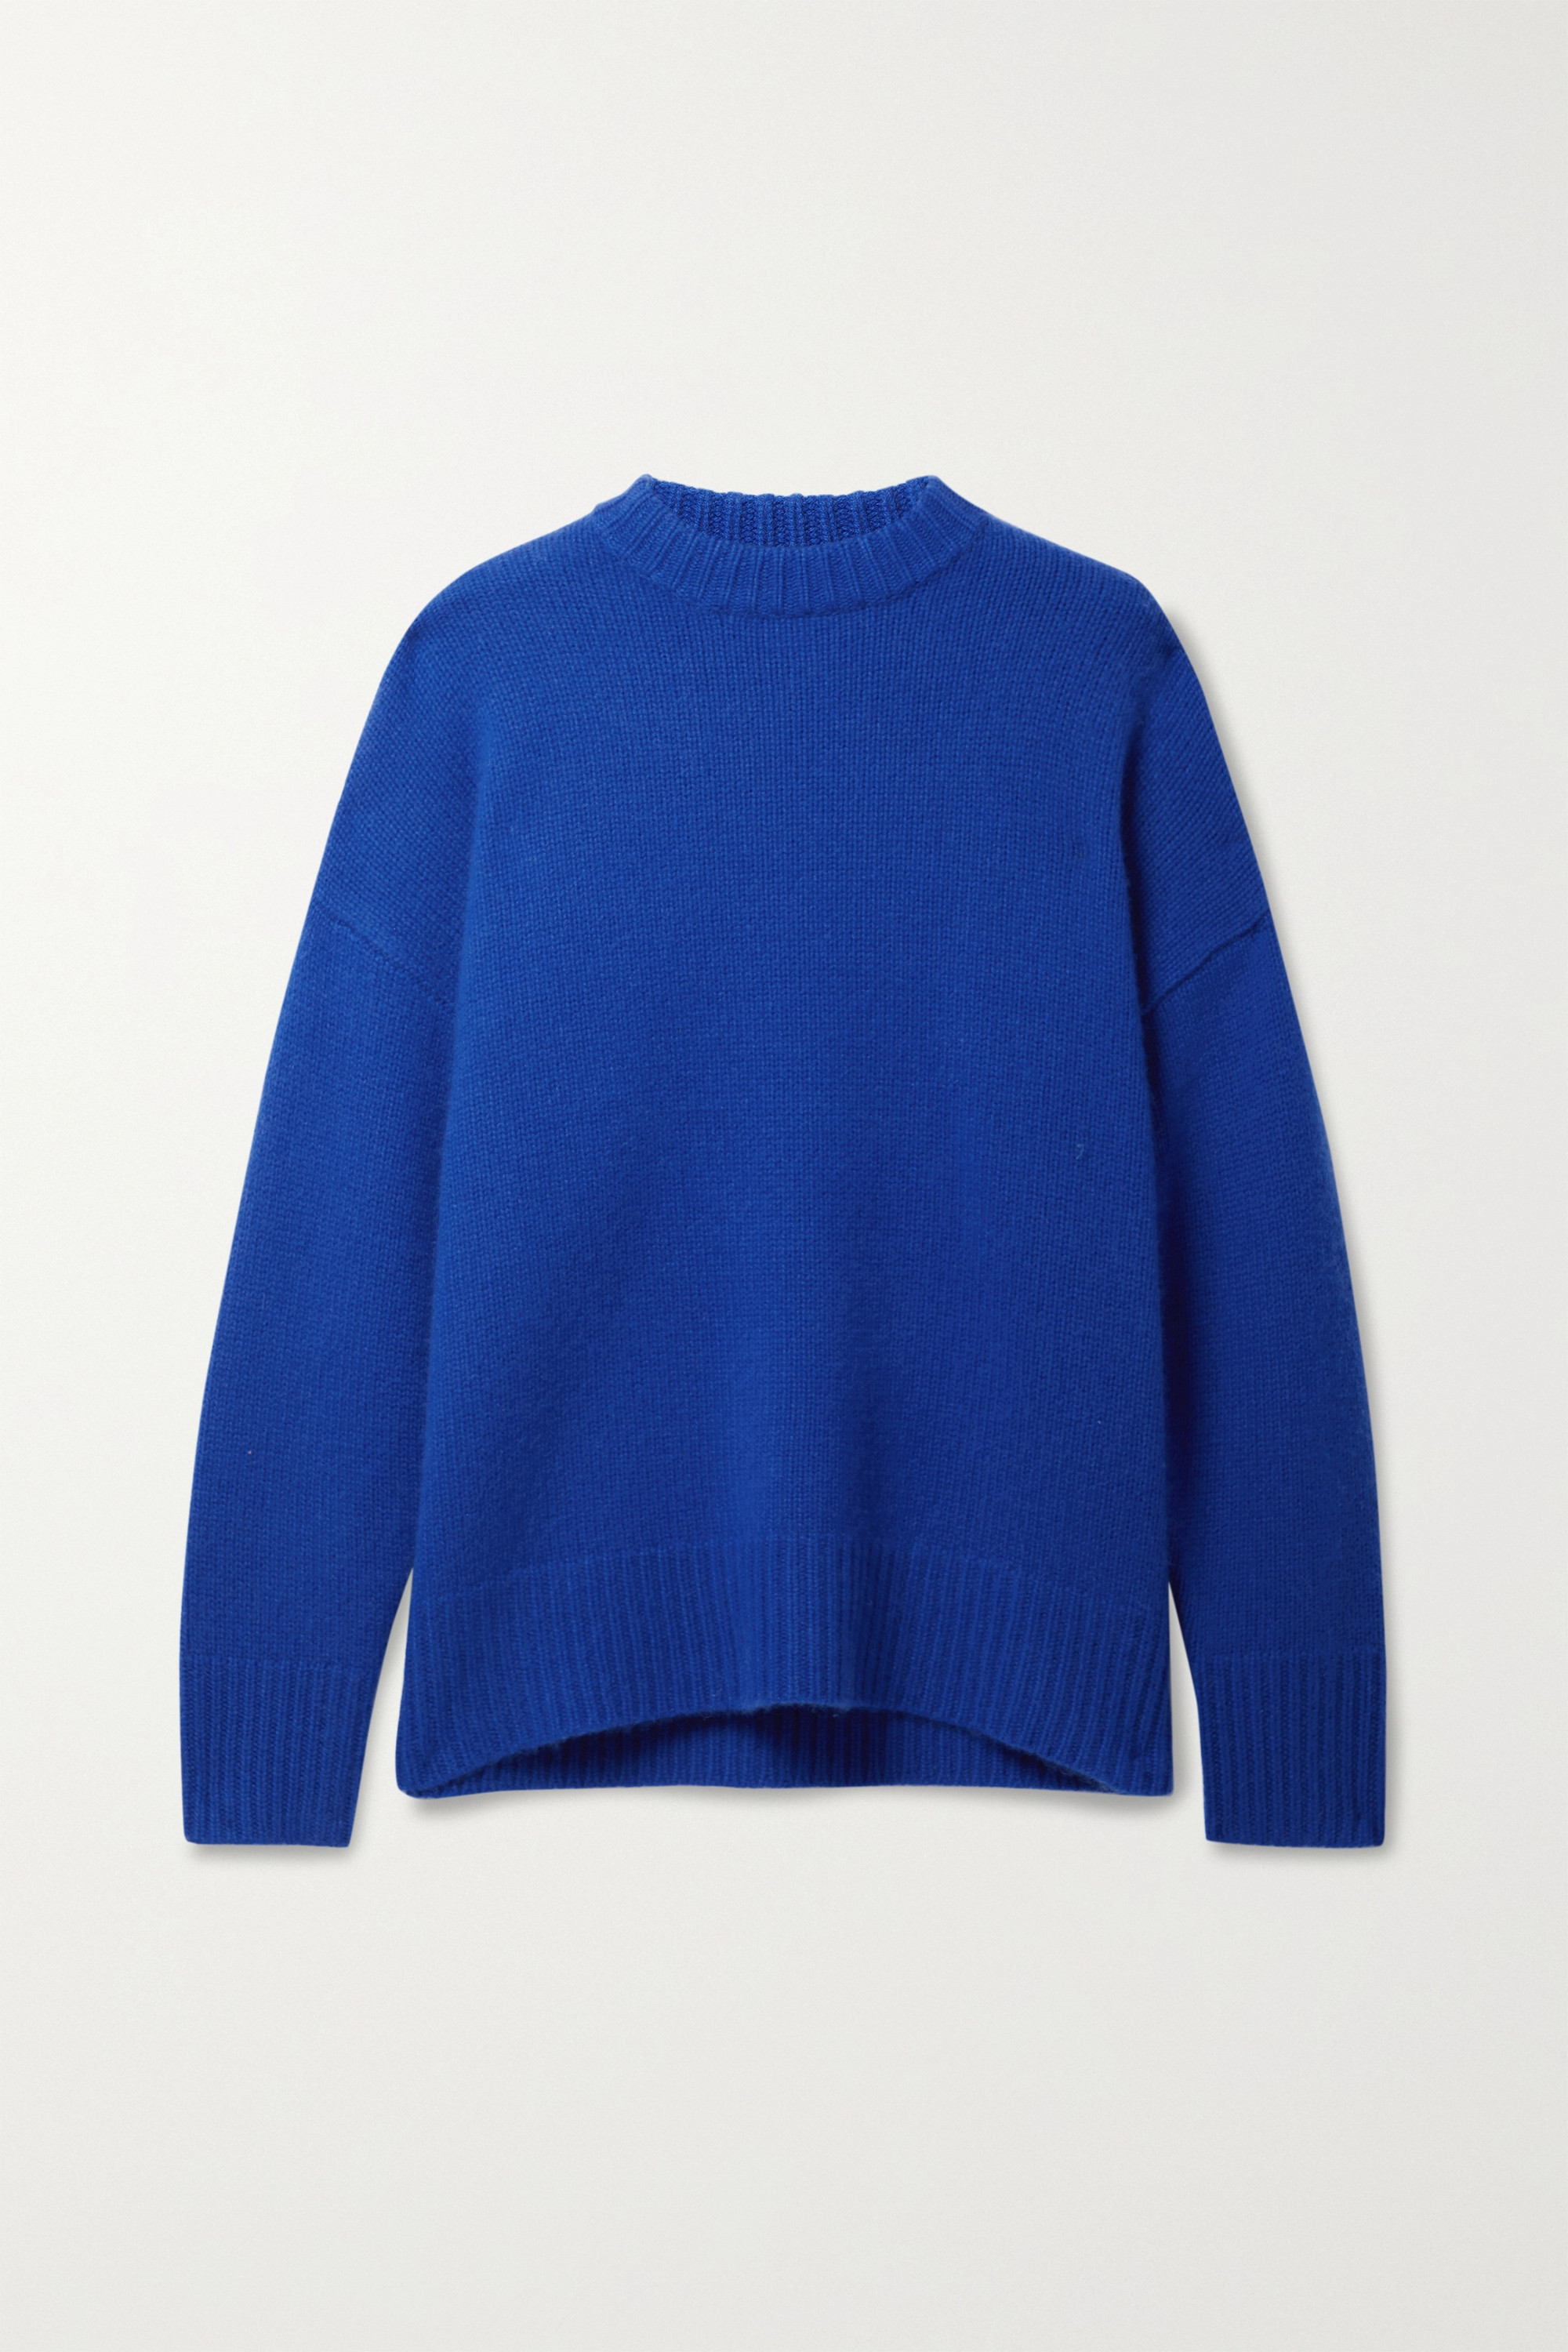 Co Brushed cashmere sweater